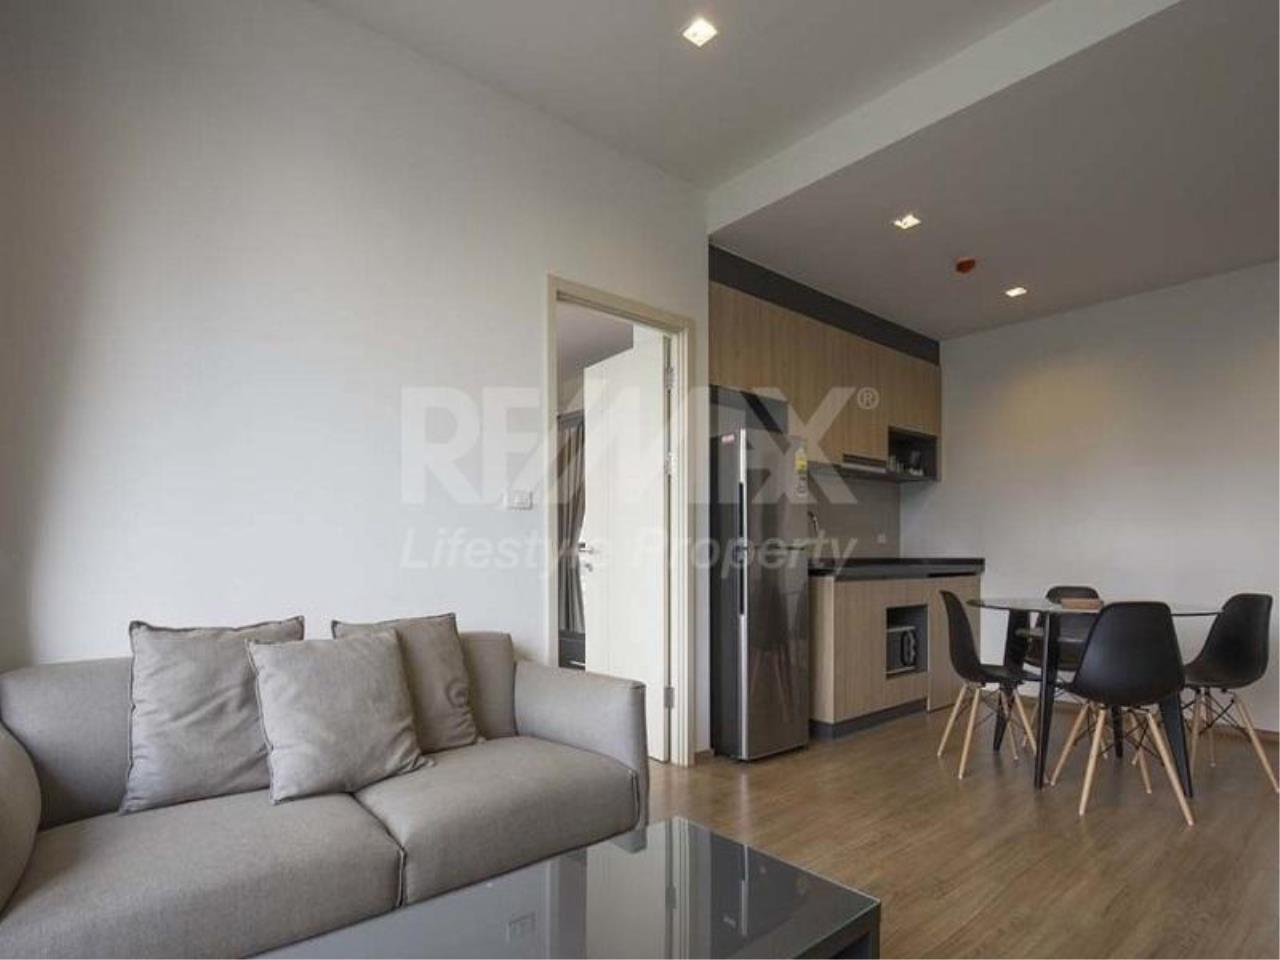 RE/MAX LifeStyle Property Agency's Hasu Haus 2